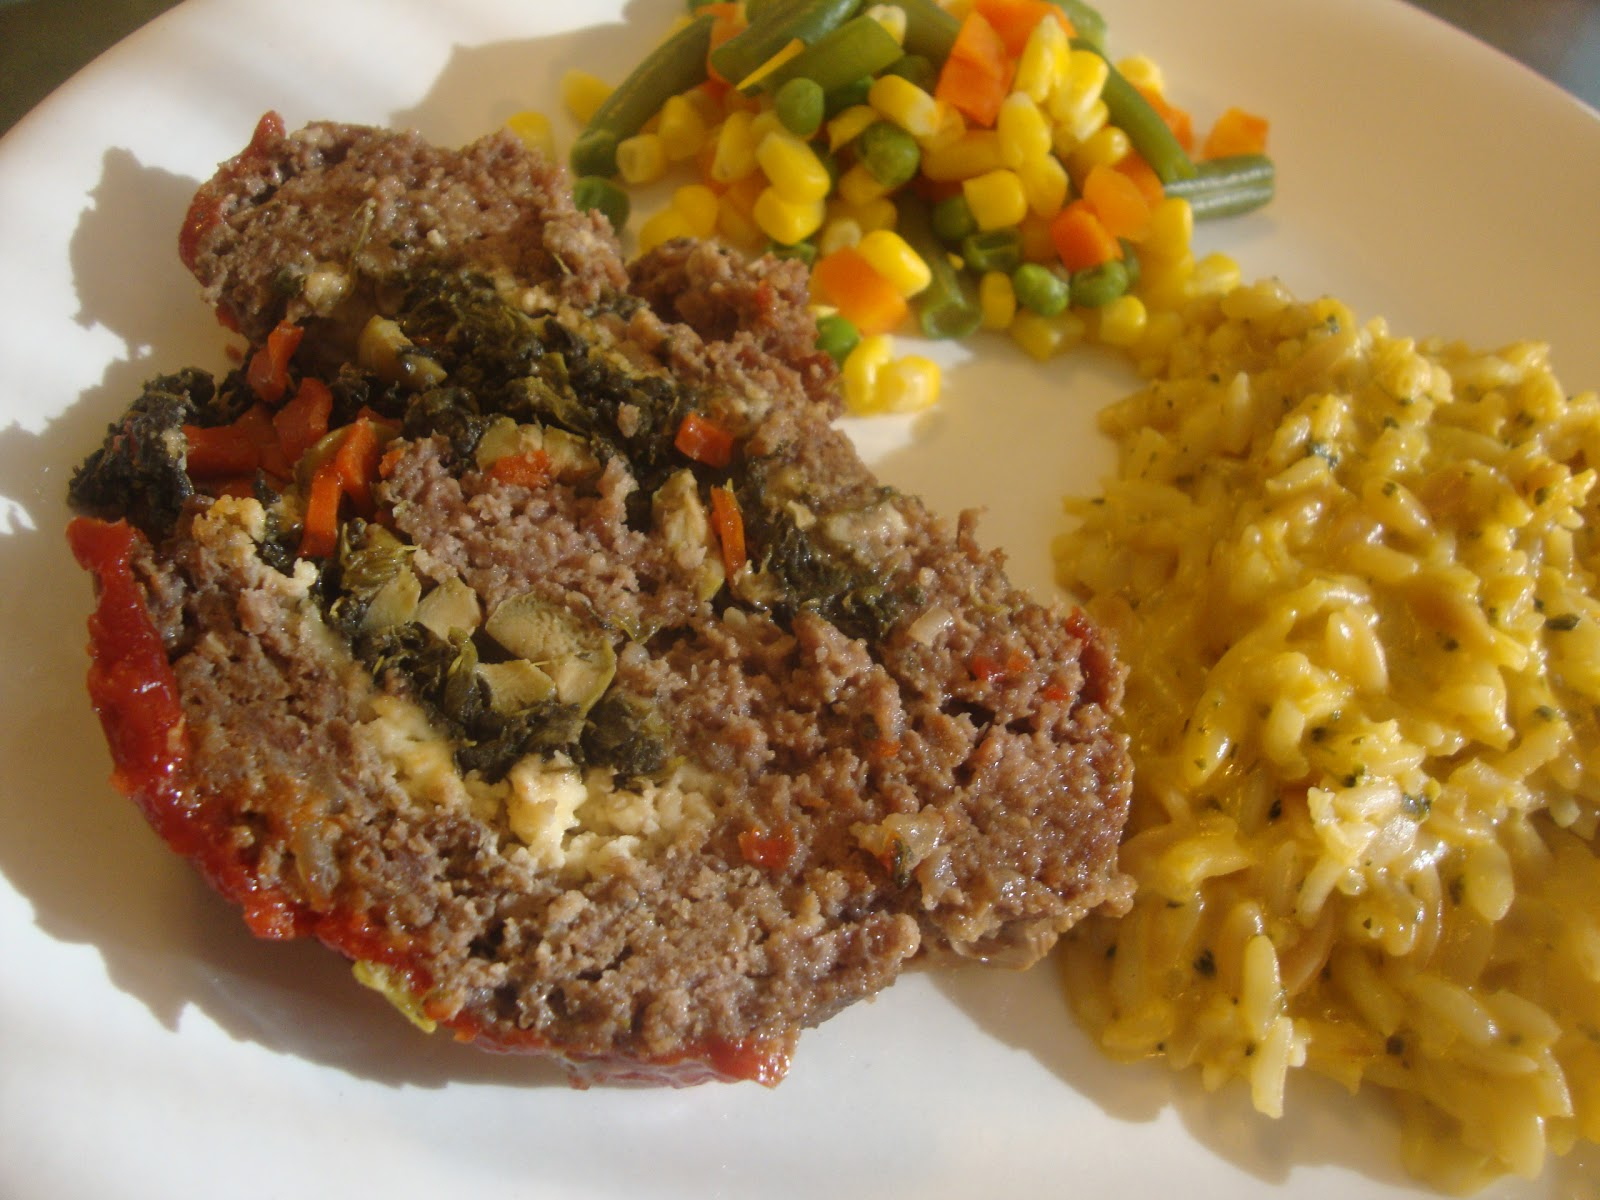 ... Slow Cooker Adventures: Spinach, Feta and Green Olive Stuffed Meatloaf